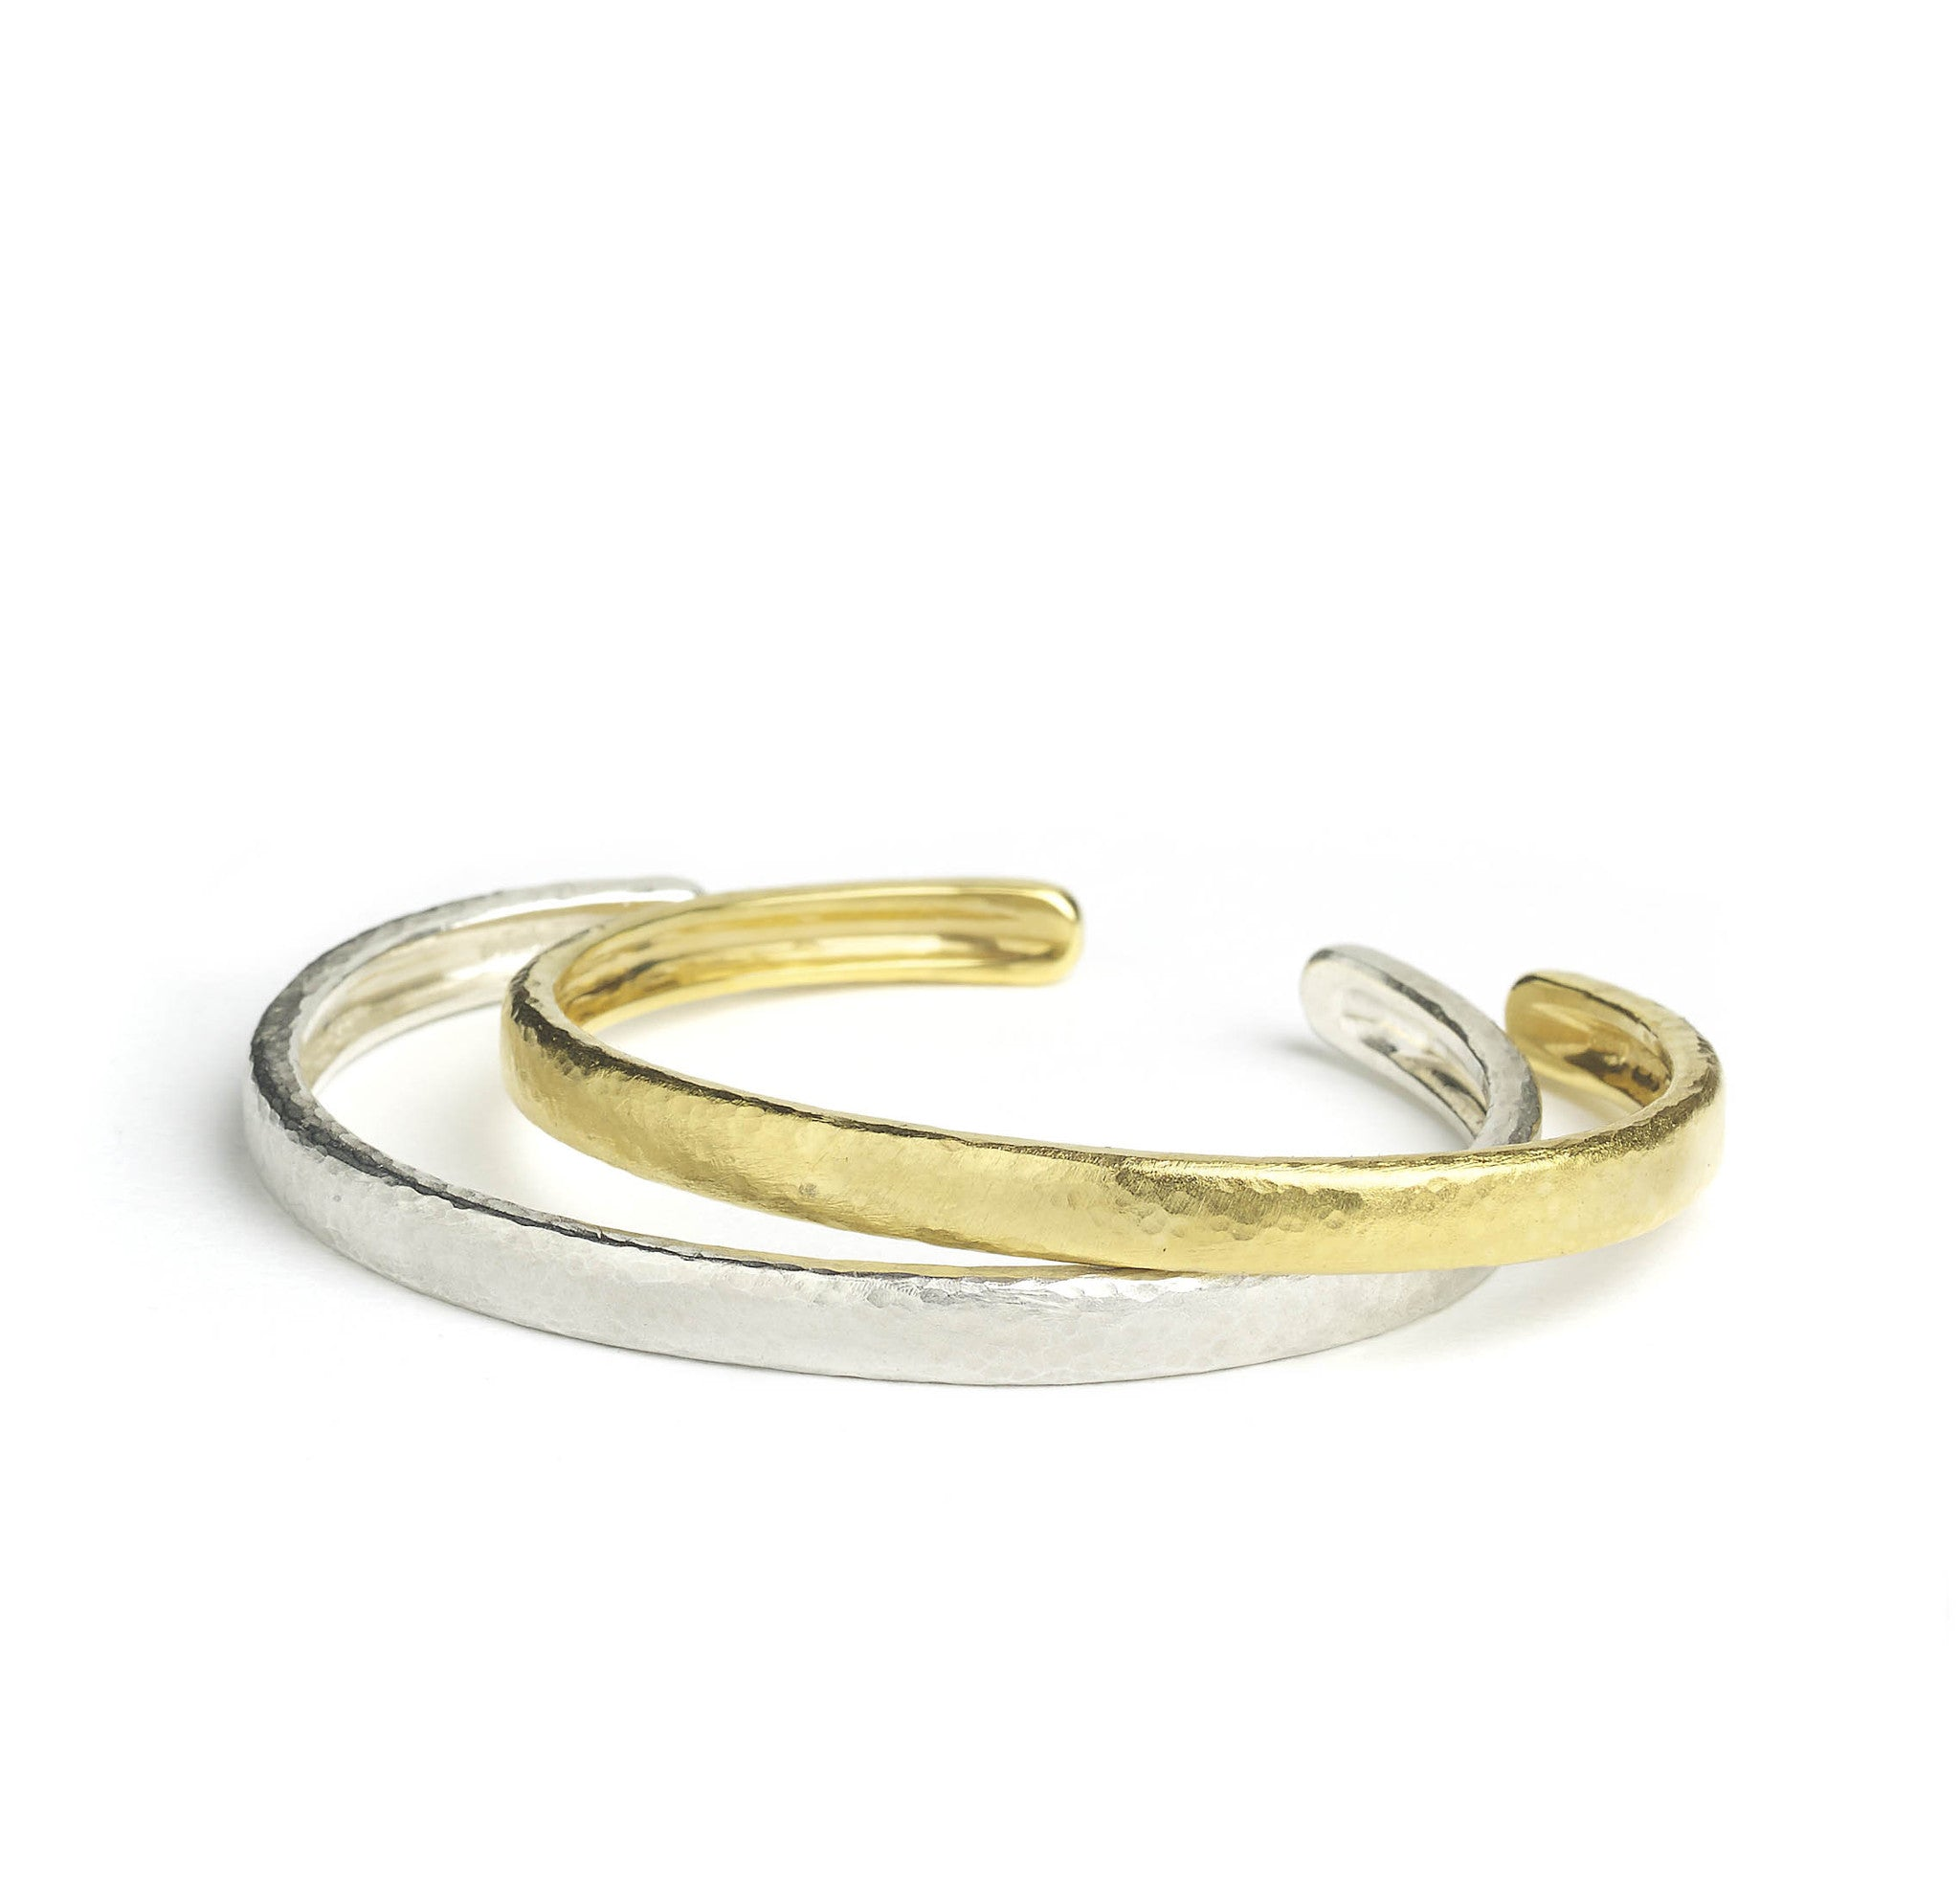 Silver & Gold Micro-plated Bangle